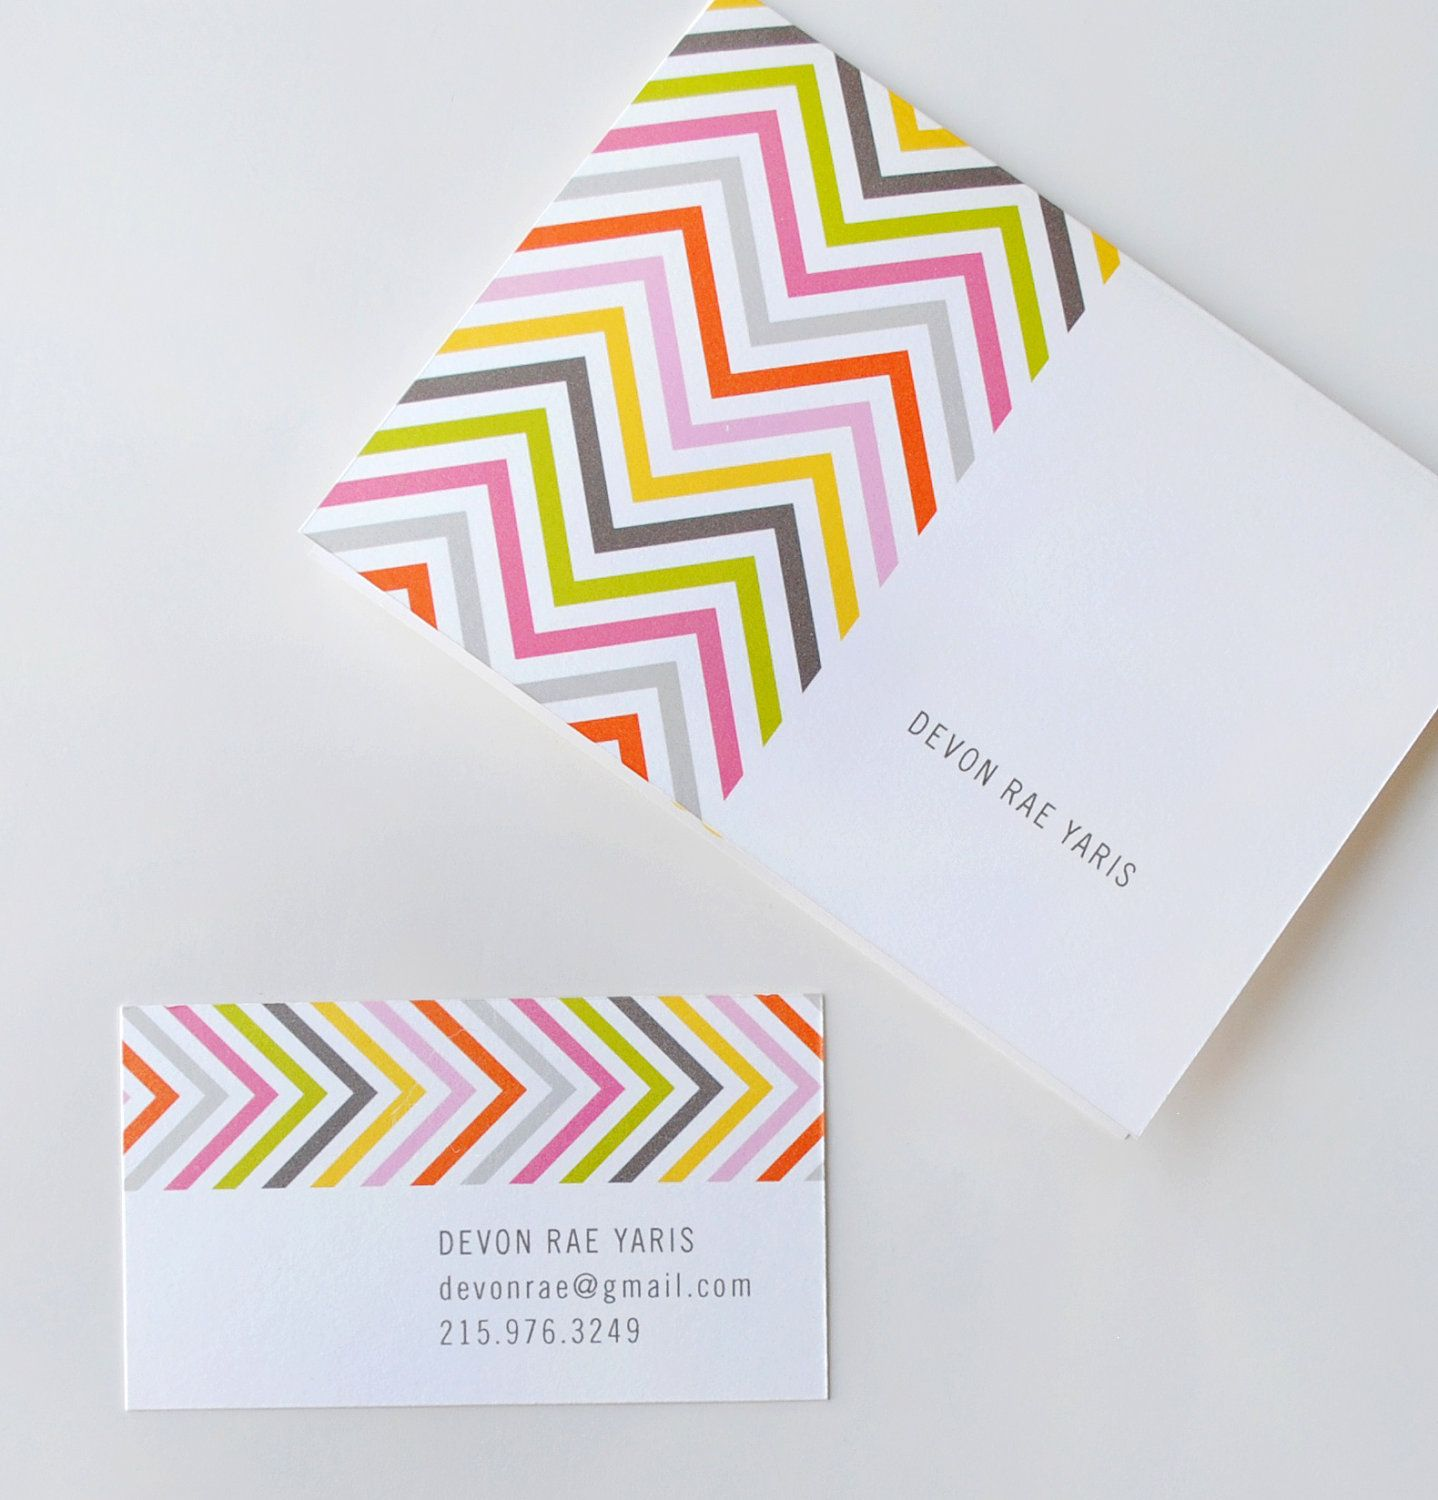 Chevron business cards, calling cards, personalized stationery ...